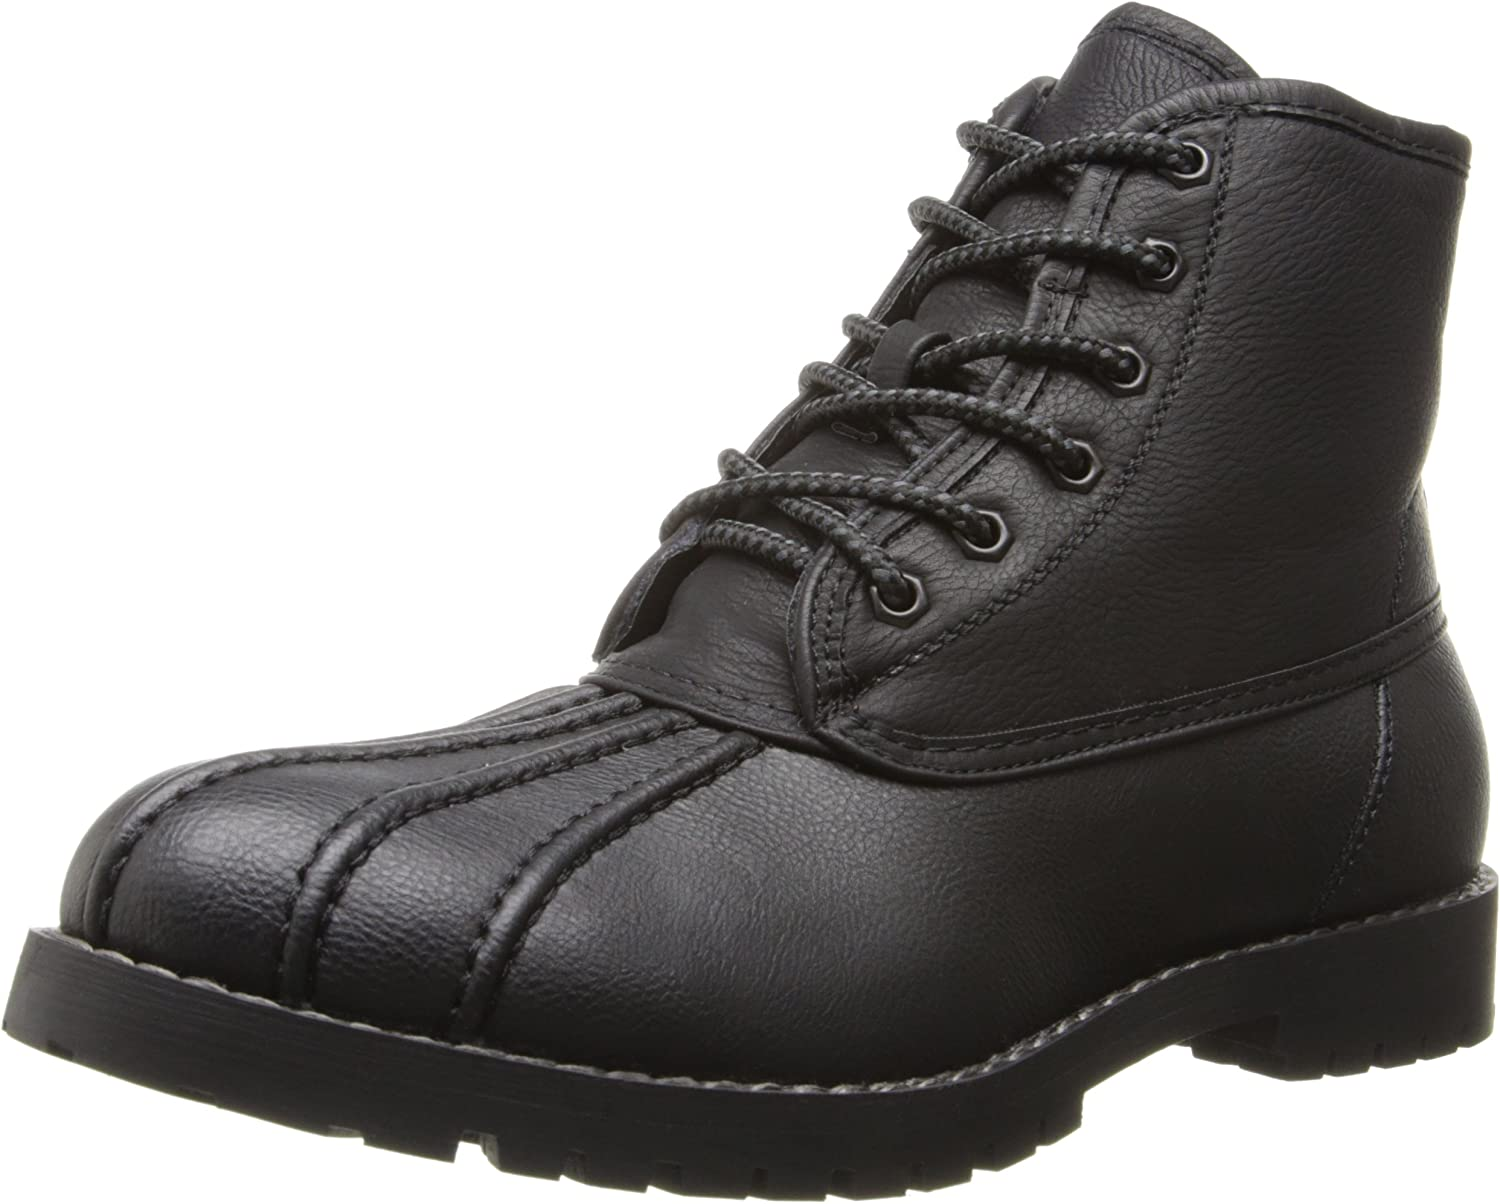 Madden Limited time cheap sale Men's Crtlnd 40% OFF Cheap Sale Boot Fashion